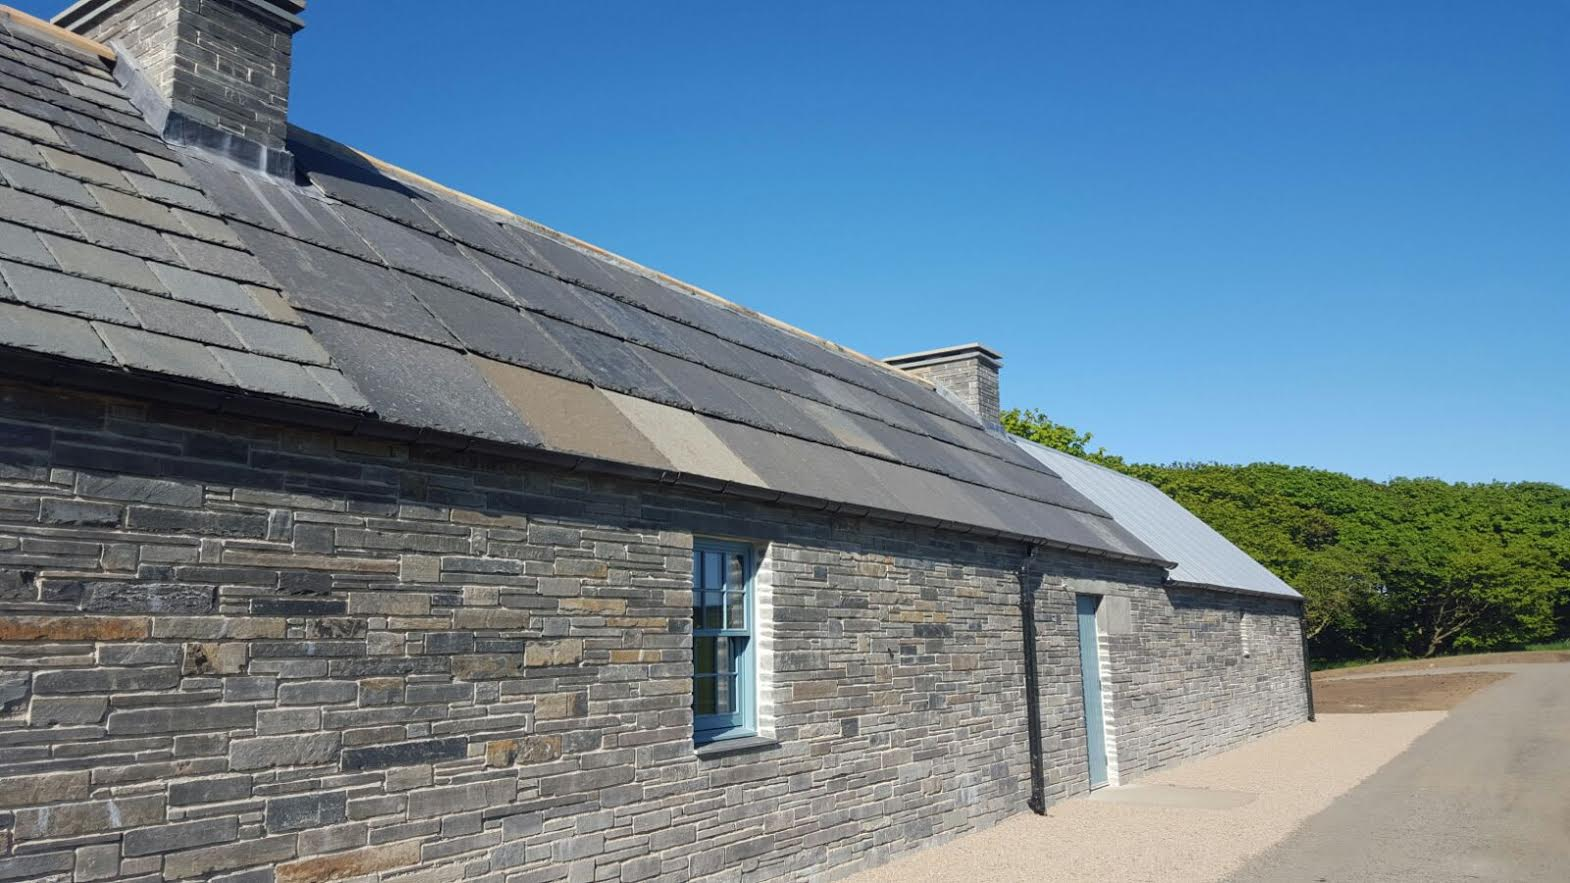 Caithness stone roof tiles